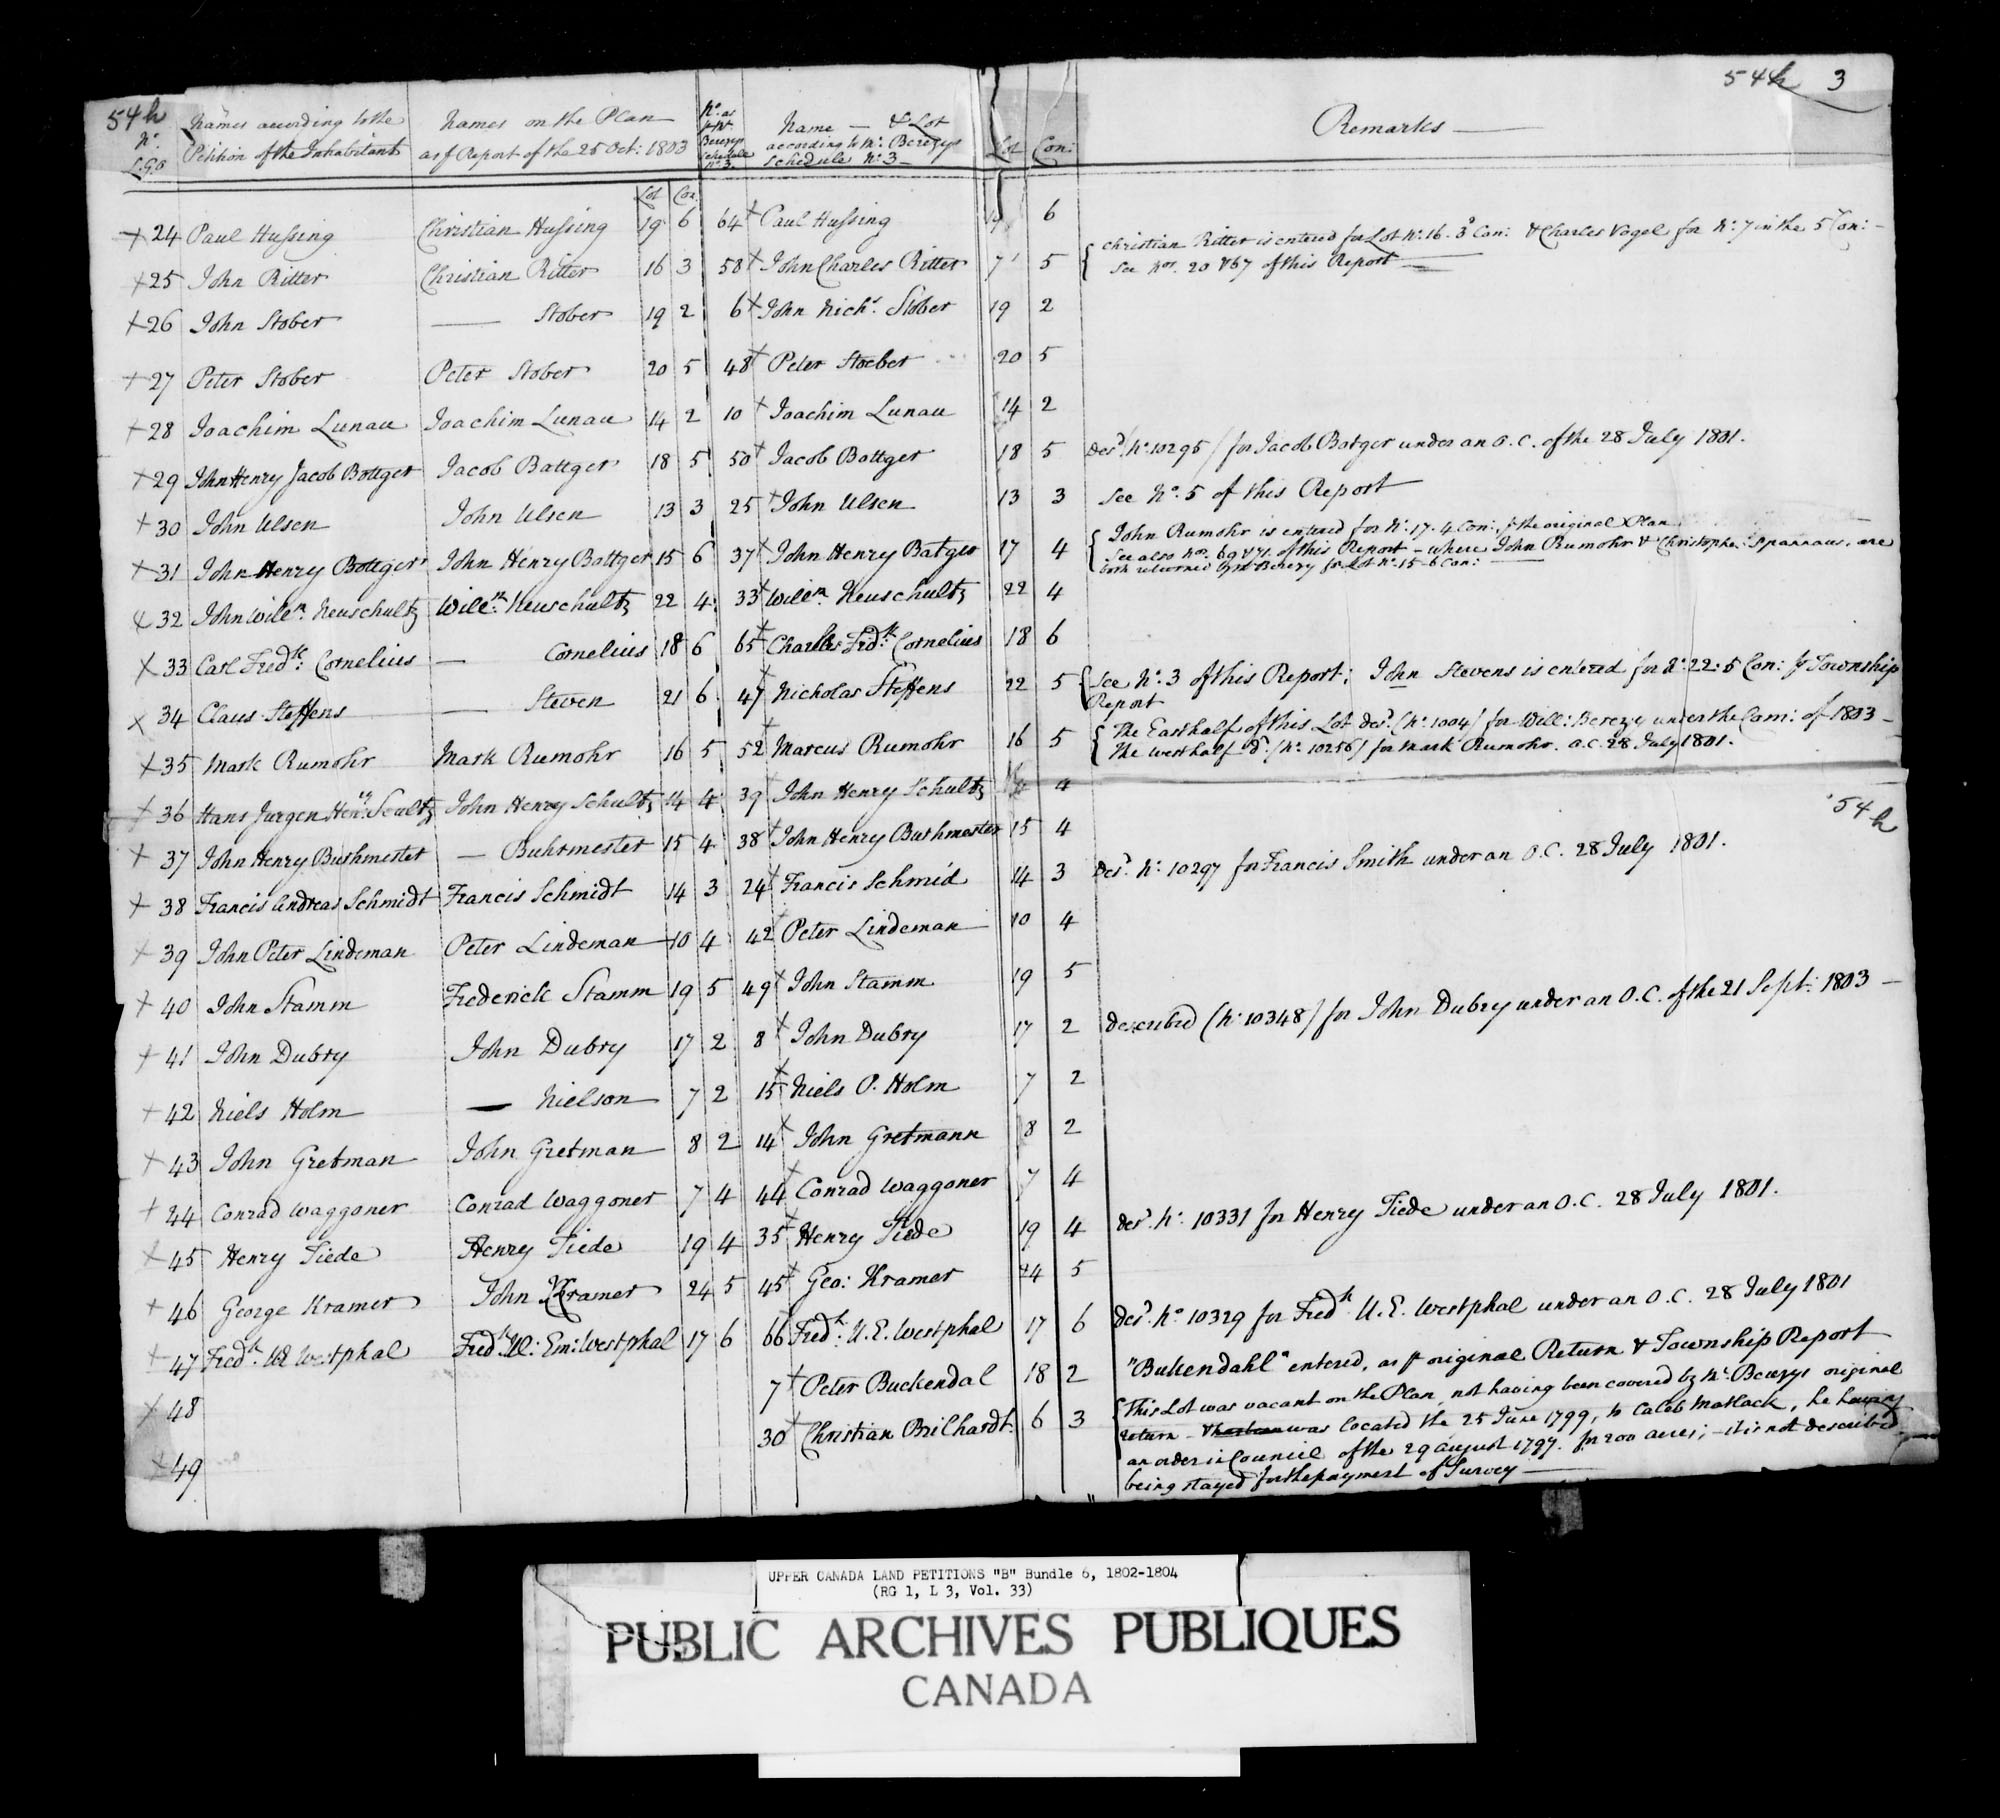 Title: Upper Canada Land Petitions (1763-1865) - Mikan Number: 205131 - Microform: c-1621